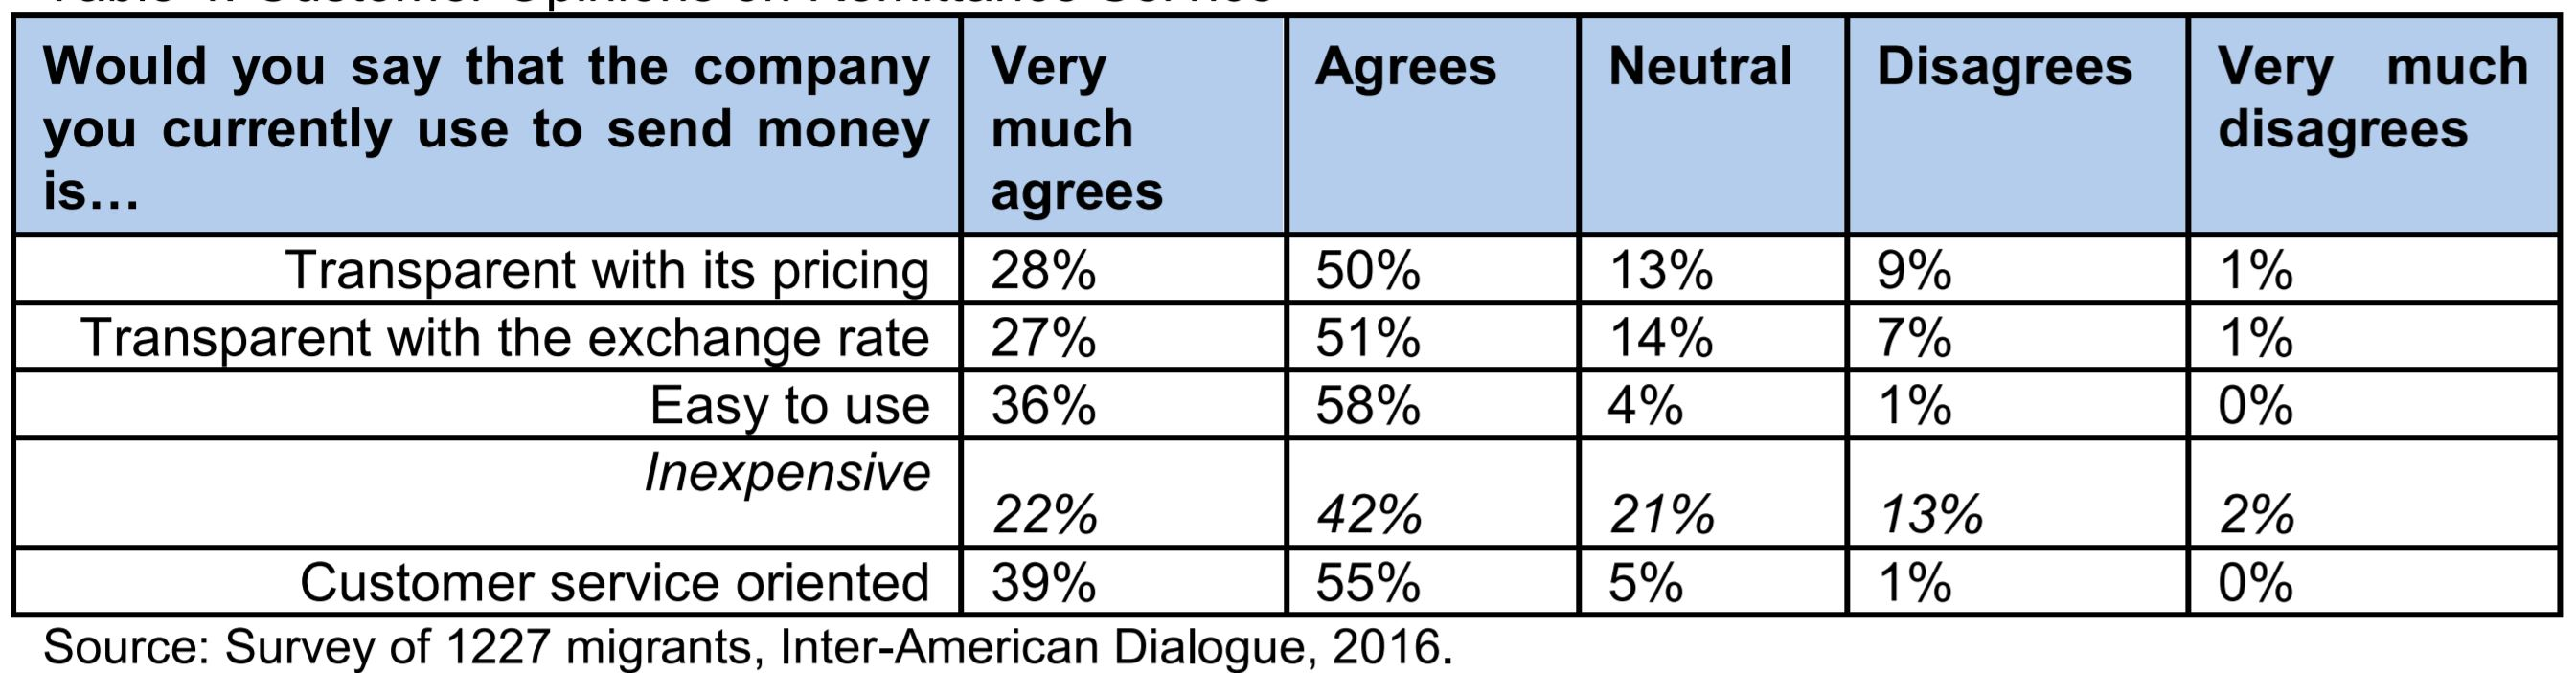 Inter-American Dialogue Survey - Feedback 2016